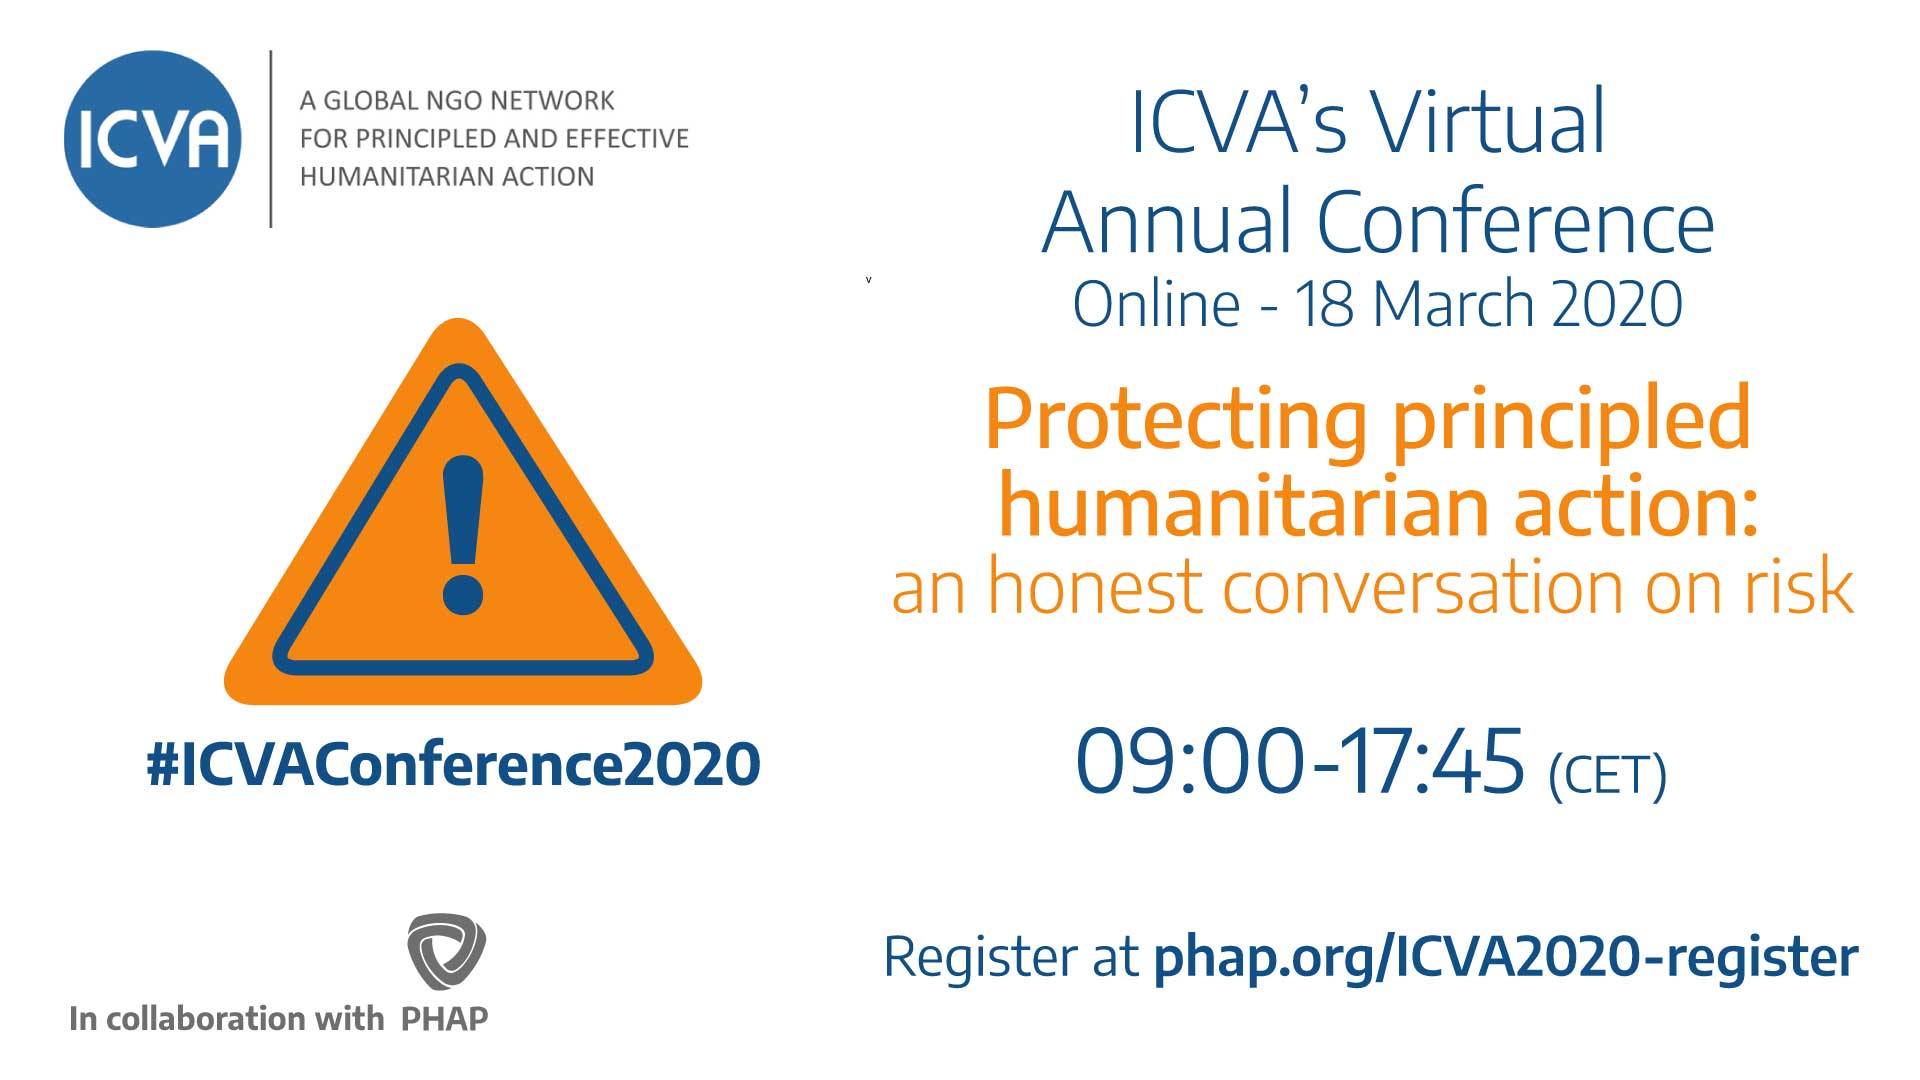 Banner for the ICVA Annual Conference 2020